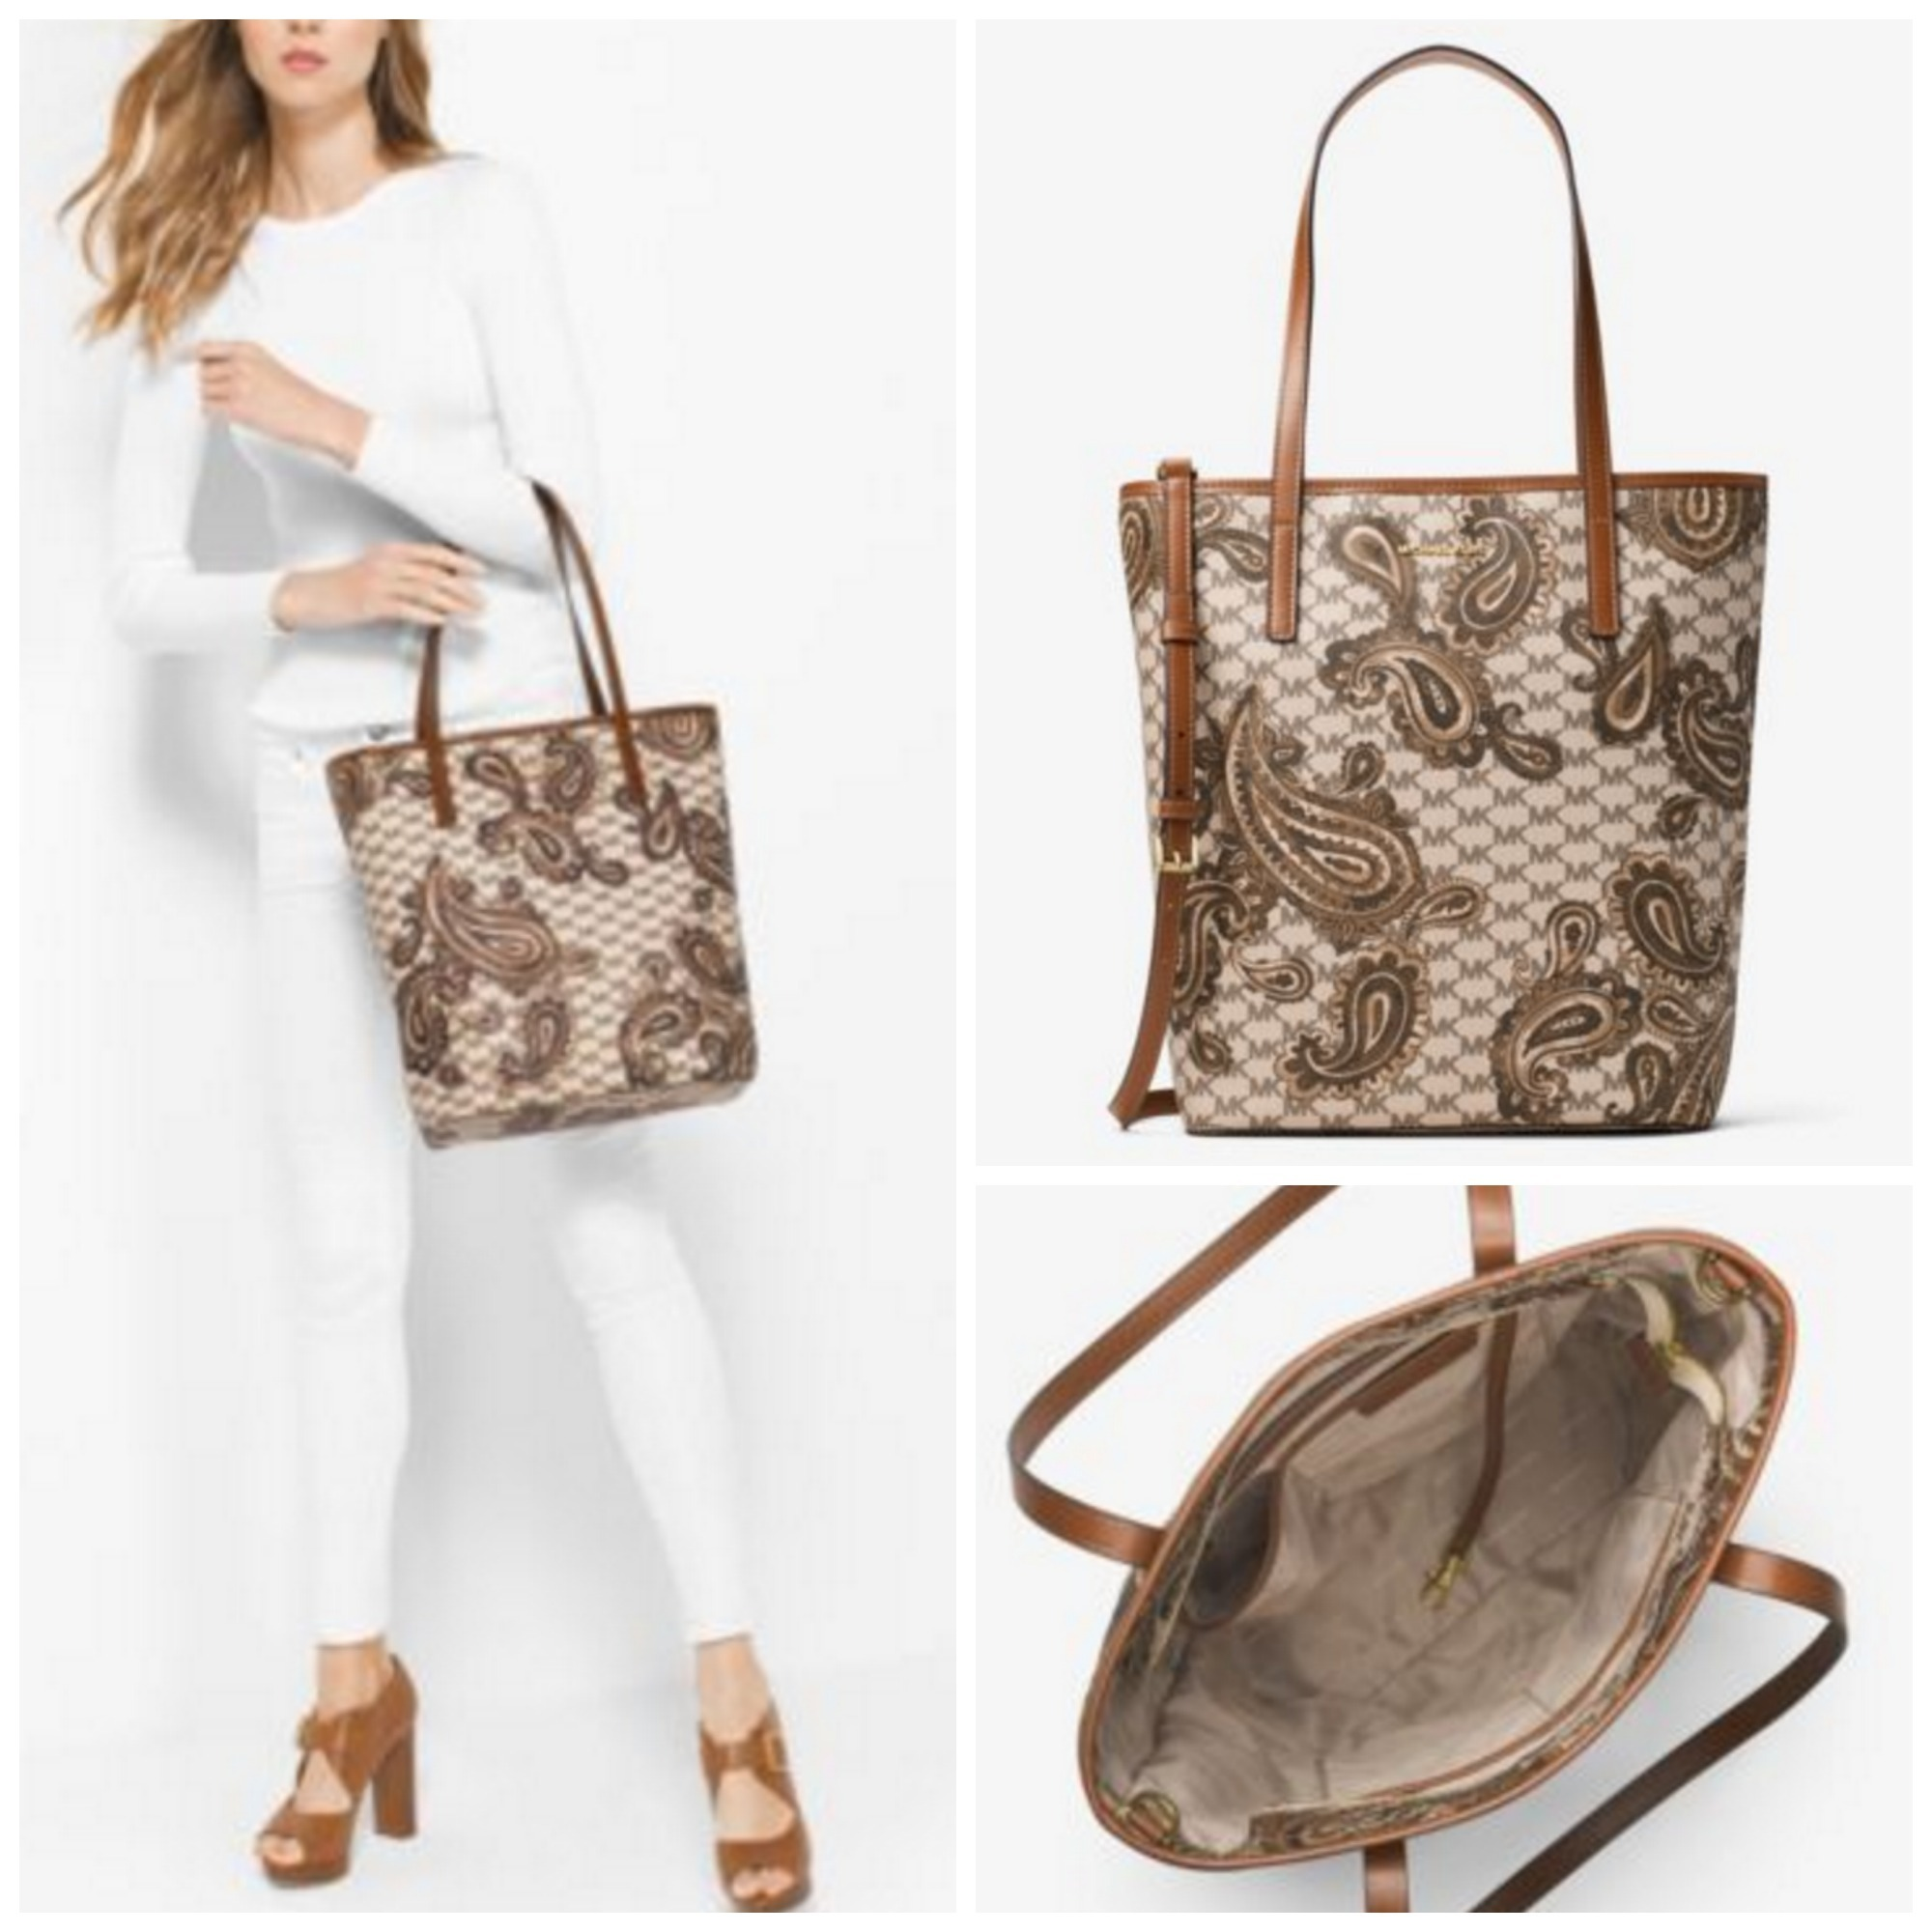 7551cb5c5a30 Michael Kors MK MICHAEL KORS Emry Large North South Heritage Paisley Tote  by QueenOfStyle - BUYMA